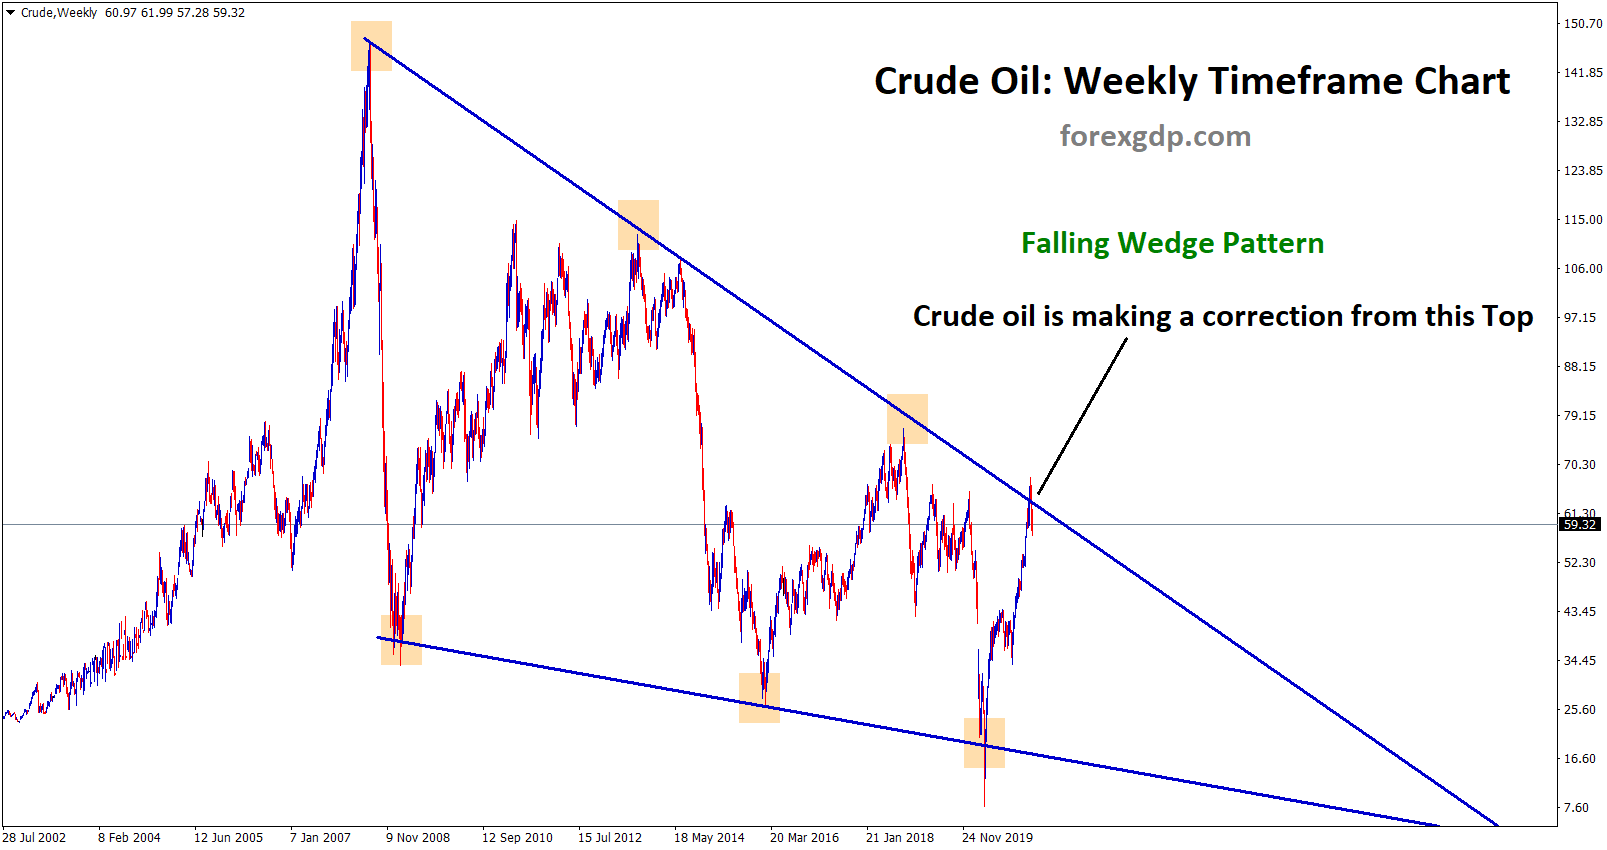 crude oil price correction in the technical chart pattern falling wedge